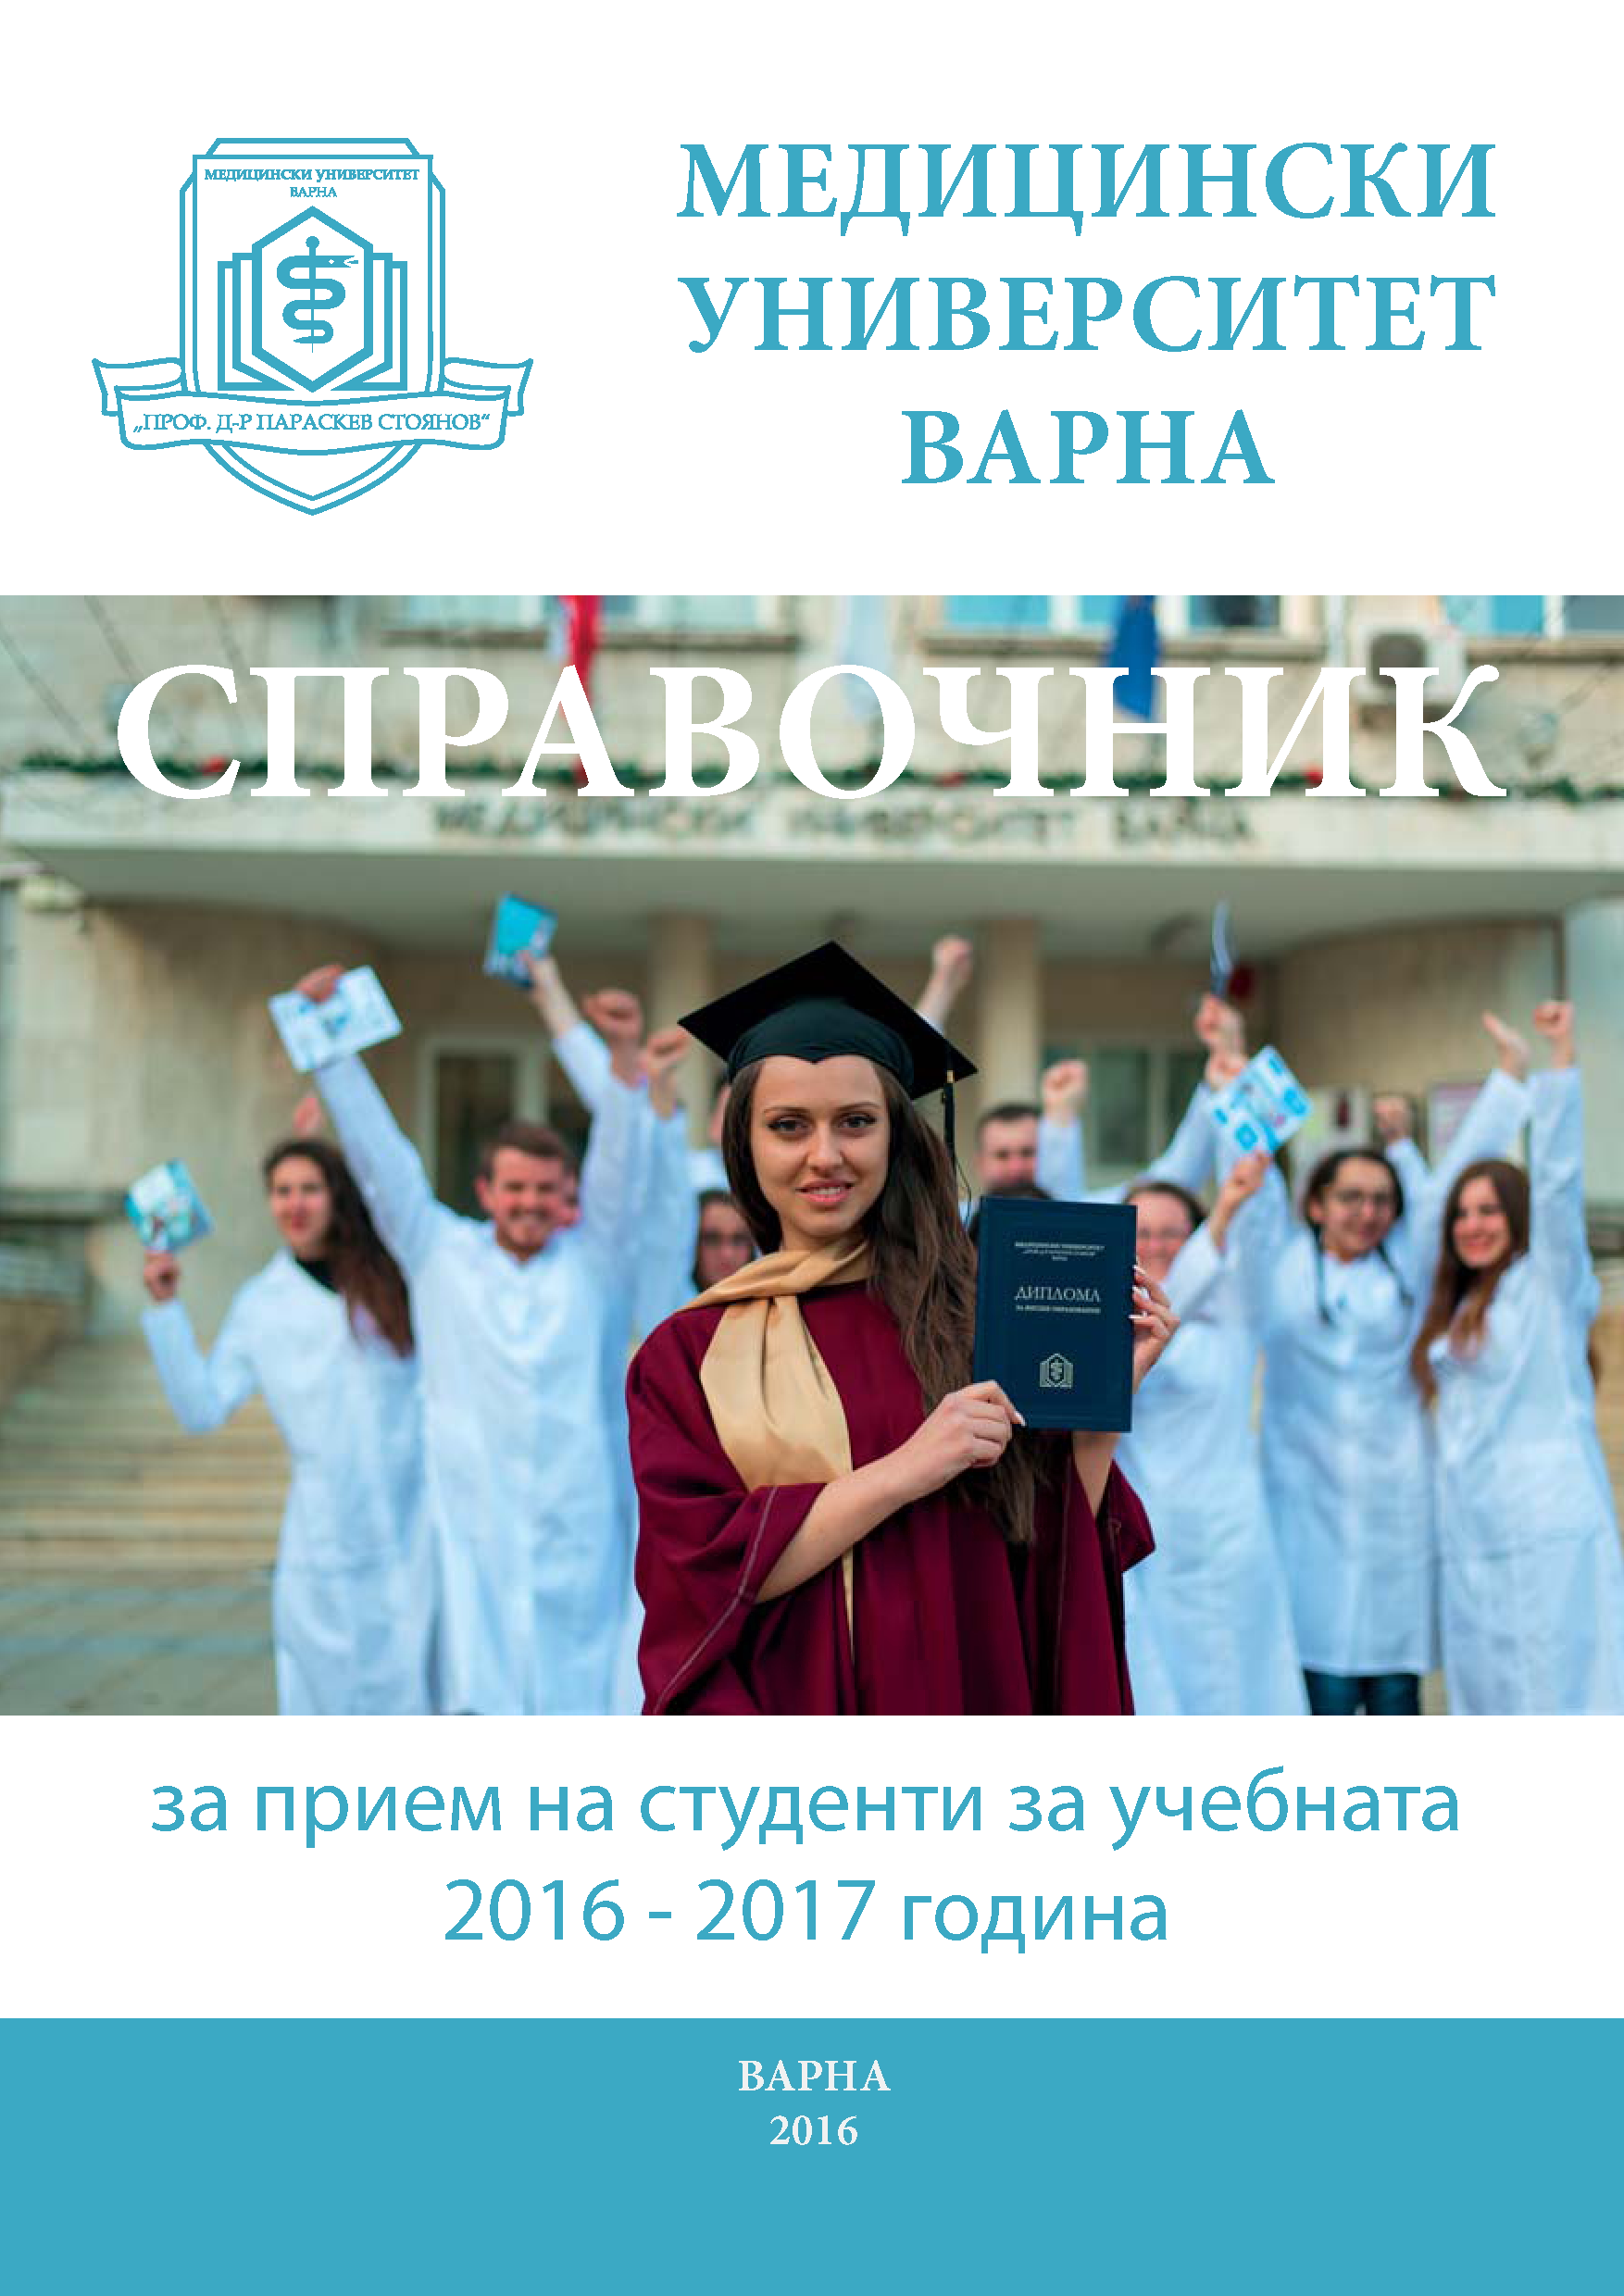 The Students' Admission Resource Book for the Academic Year 2016/2017